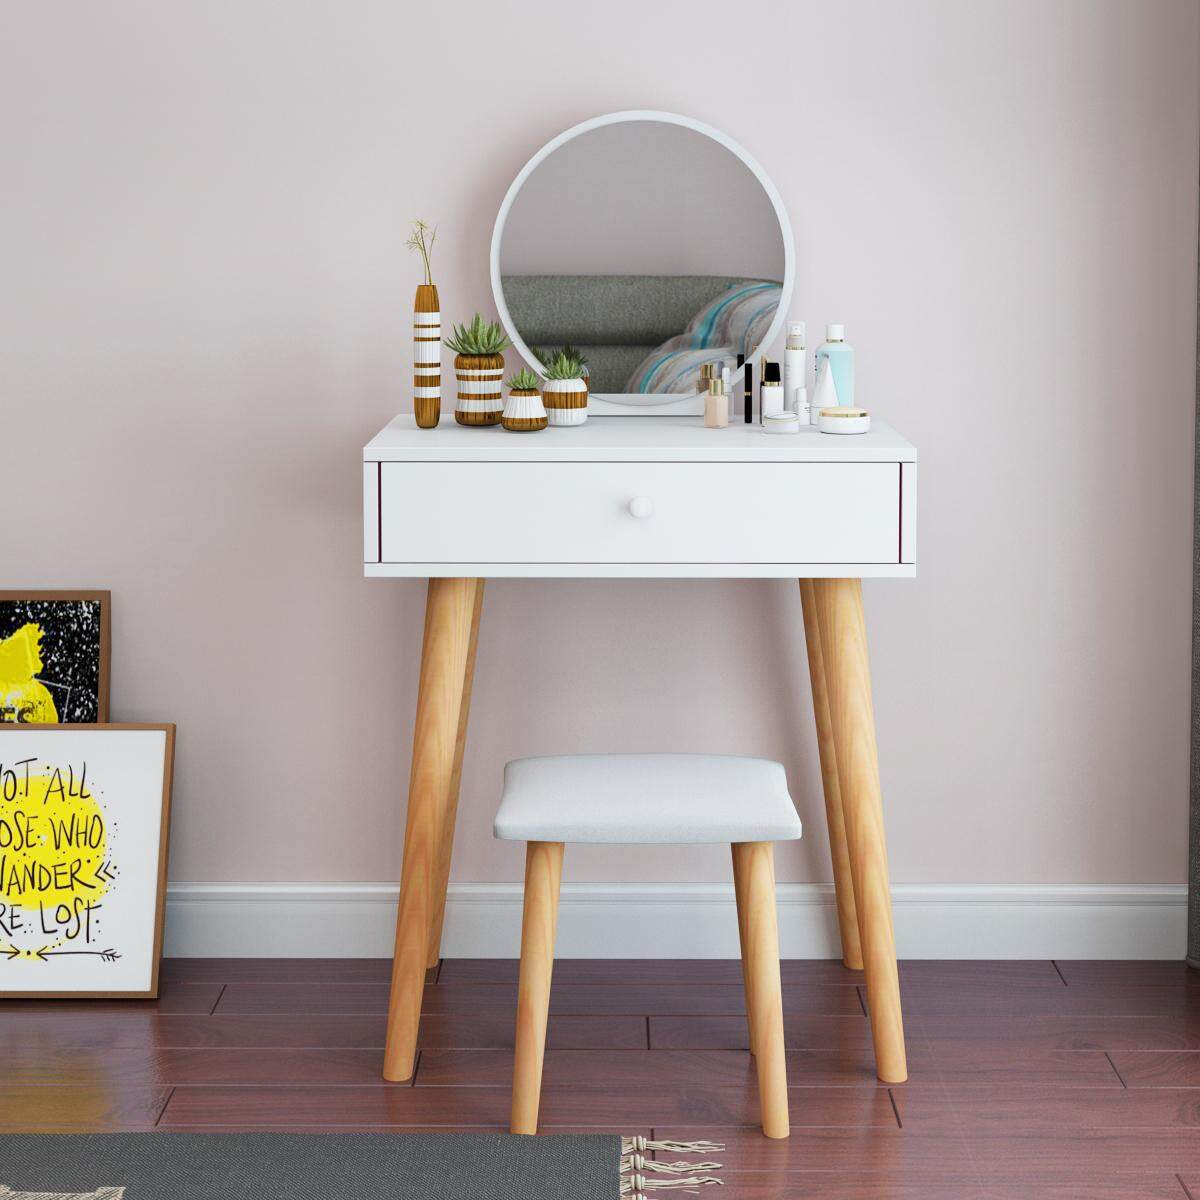 60CM in Width, Dressing Table Solid Wood European Bedroom Dressing Table with Stool, Princess Makeup Cabinet Luxury flip Small Dressing Table. Doubel Drawer